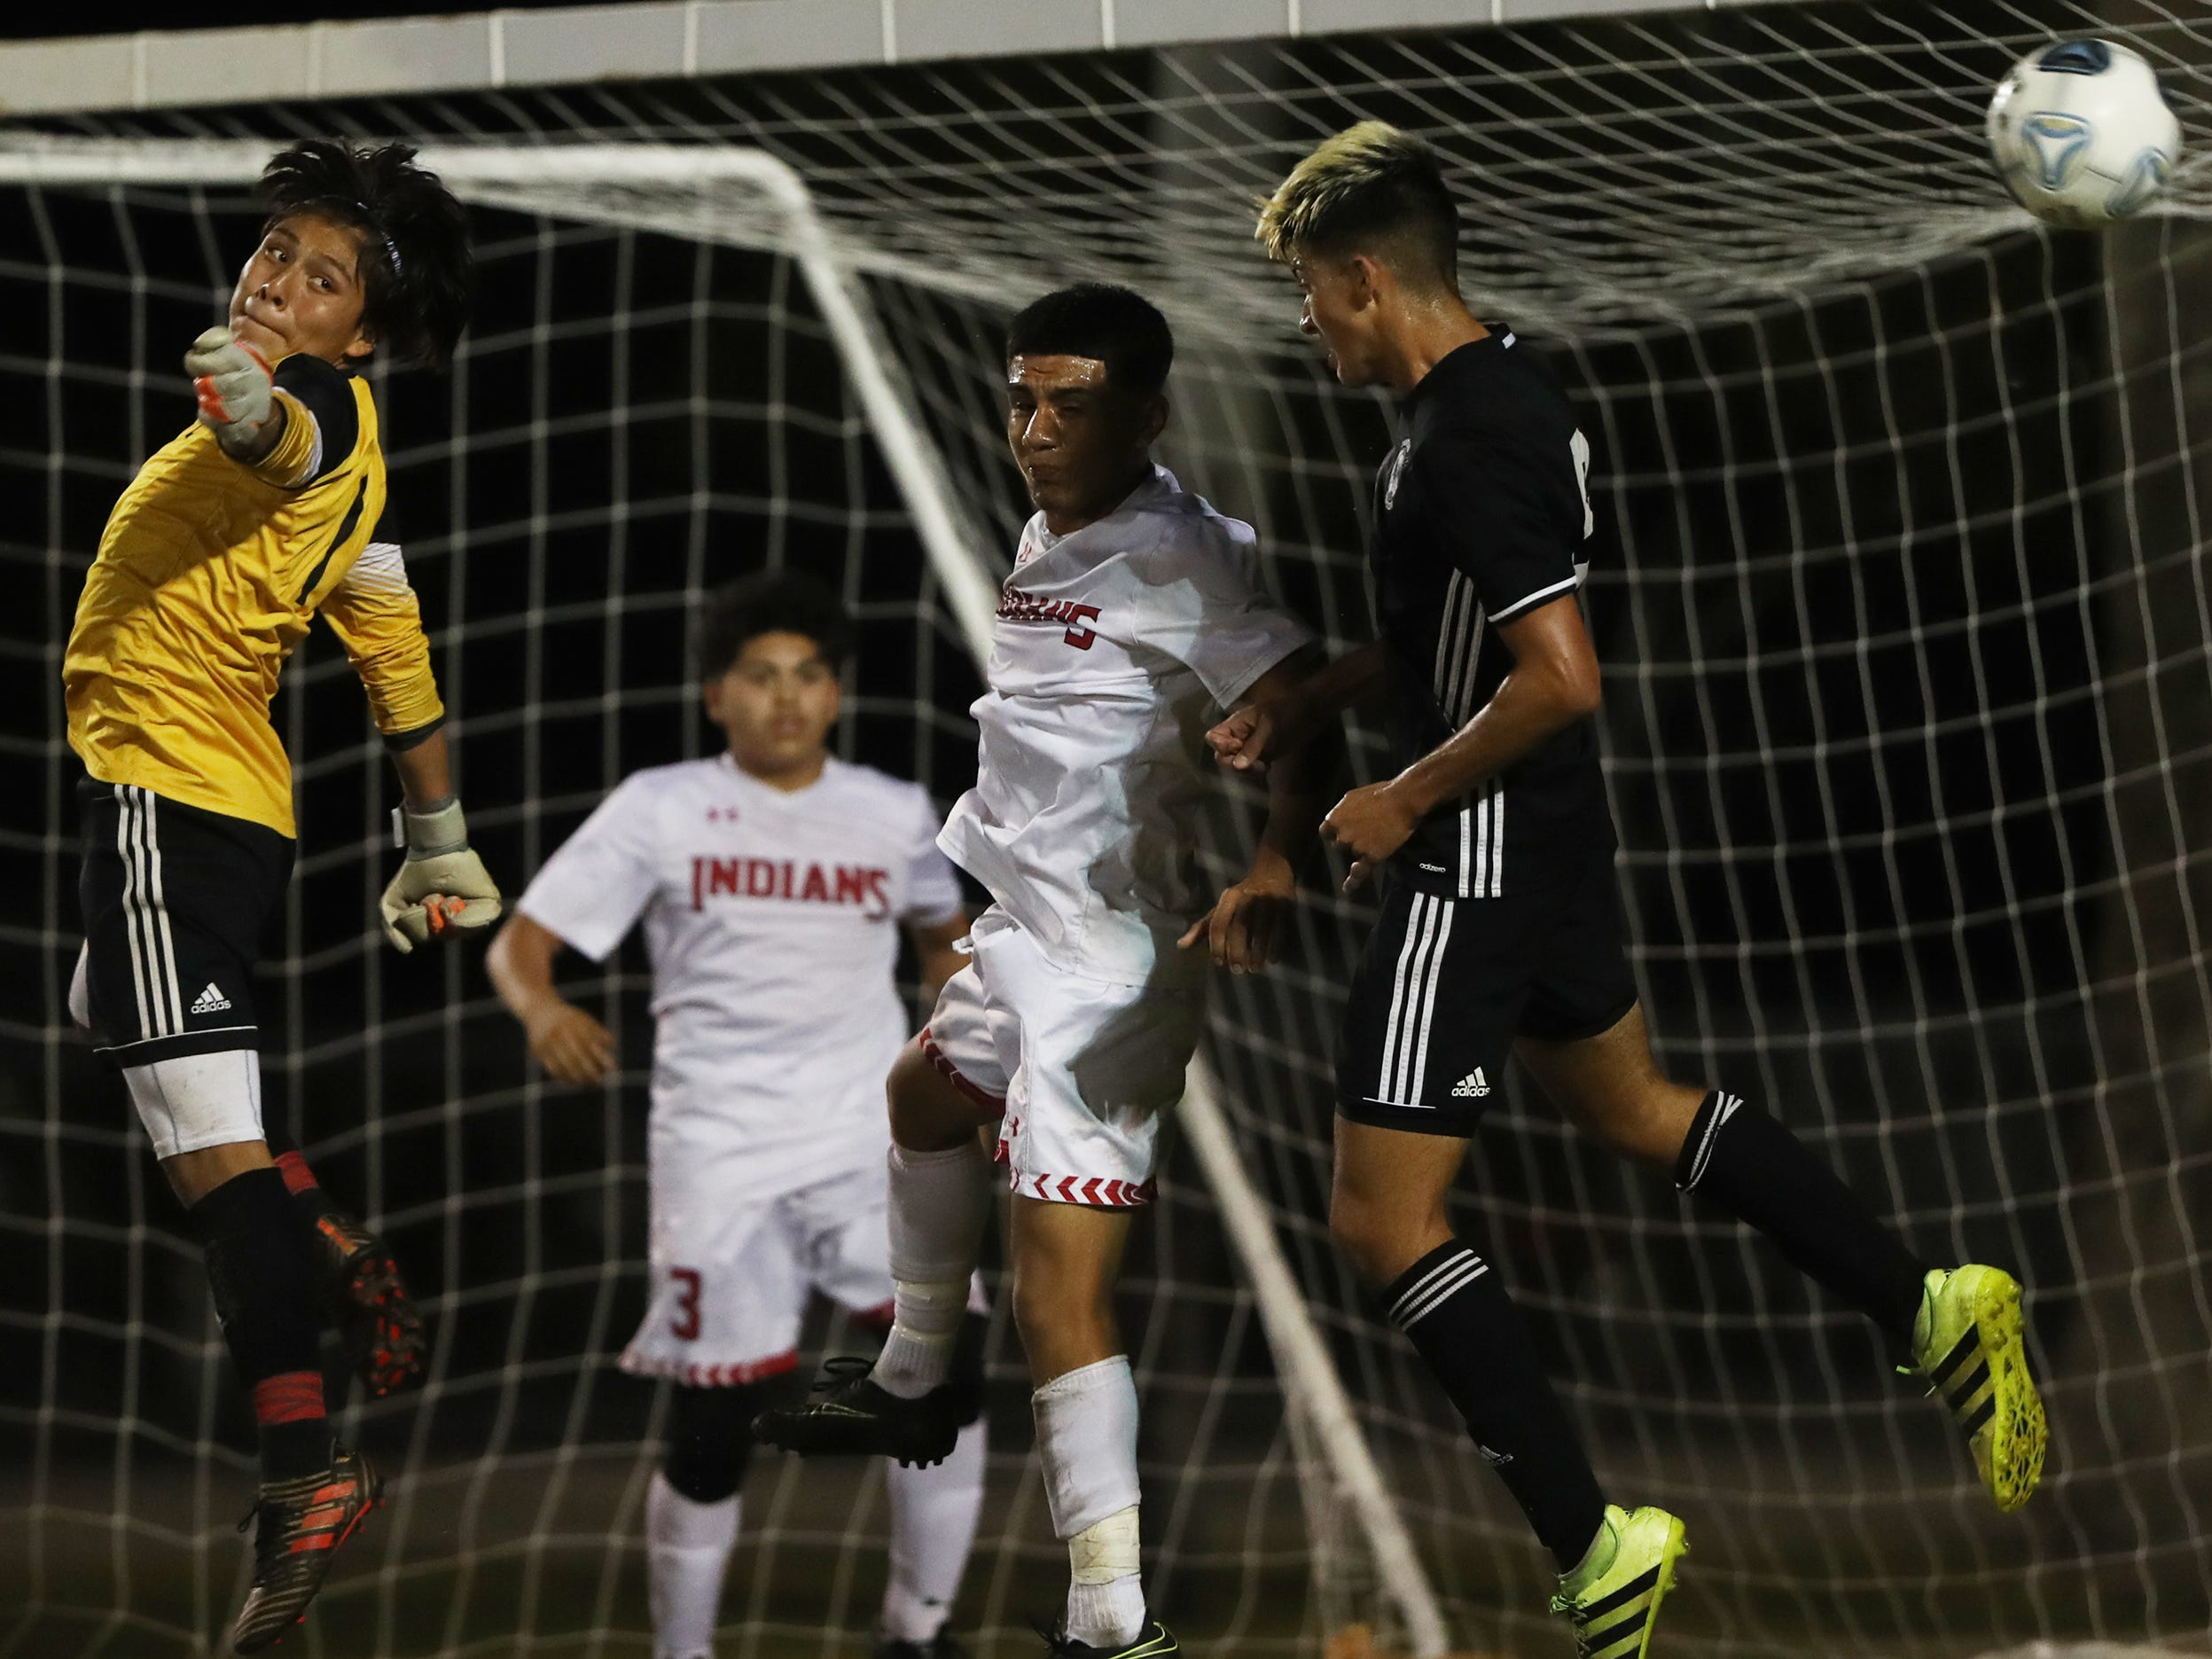 Immokalee High School's Alexander Gaspar, left, blocks a shot against Mariner on Wednesday in the Class 3A regional quarterfinal. Mariner beat Immokalee 2-0.